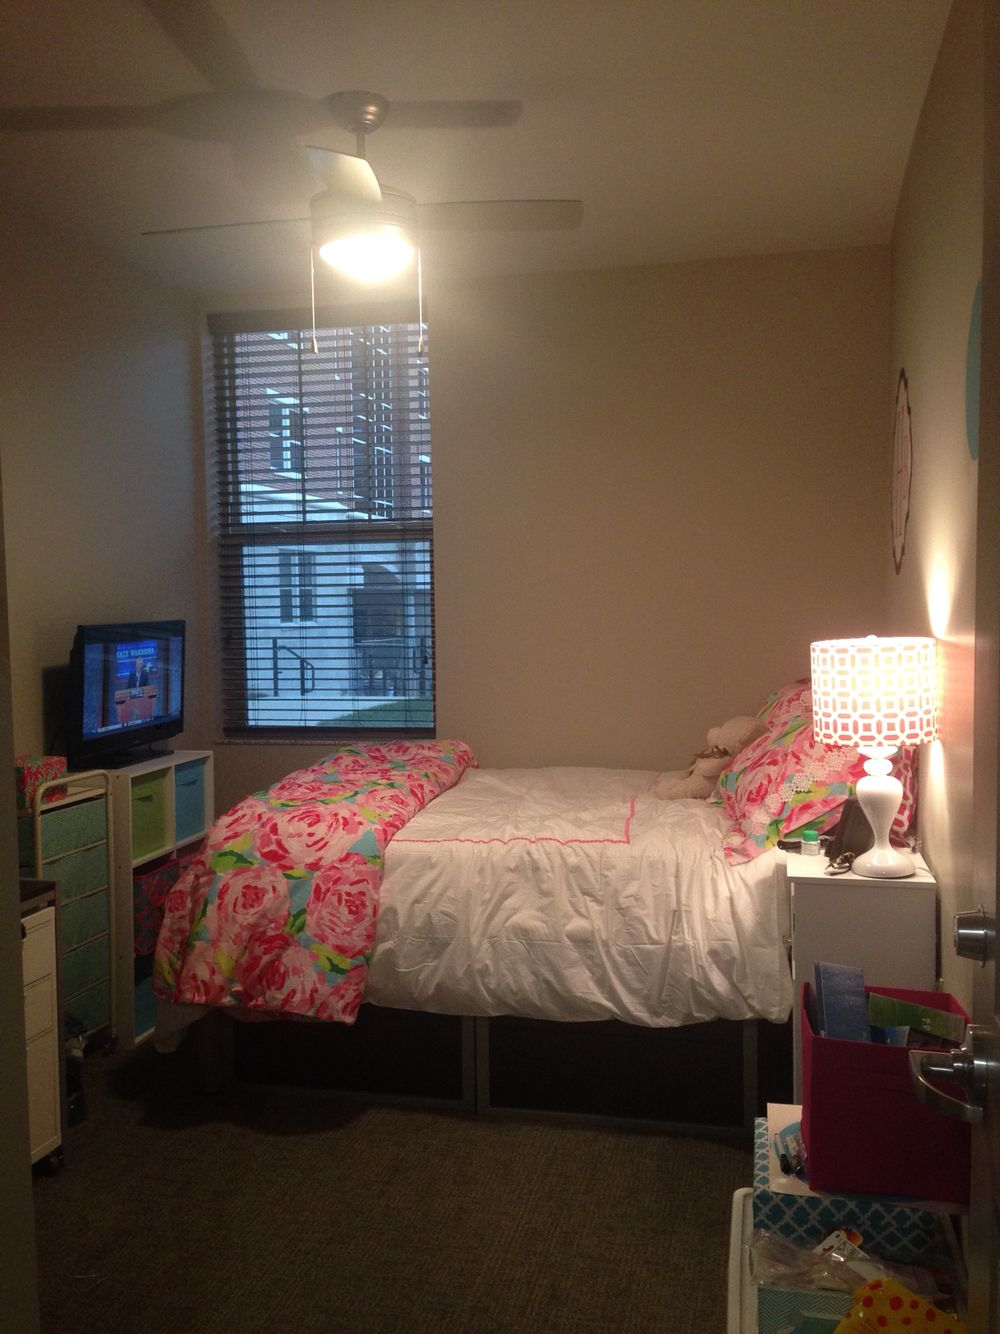 University Of Kentucky Dorm With Lilly Pulitzer Bedding In